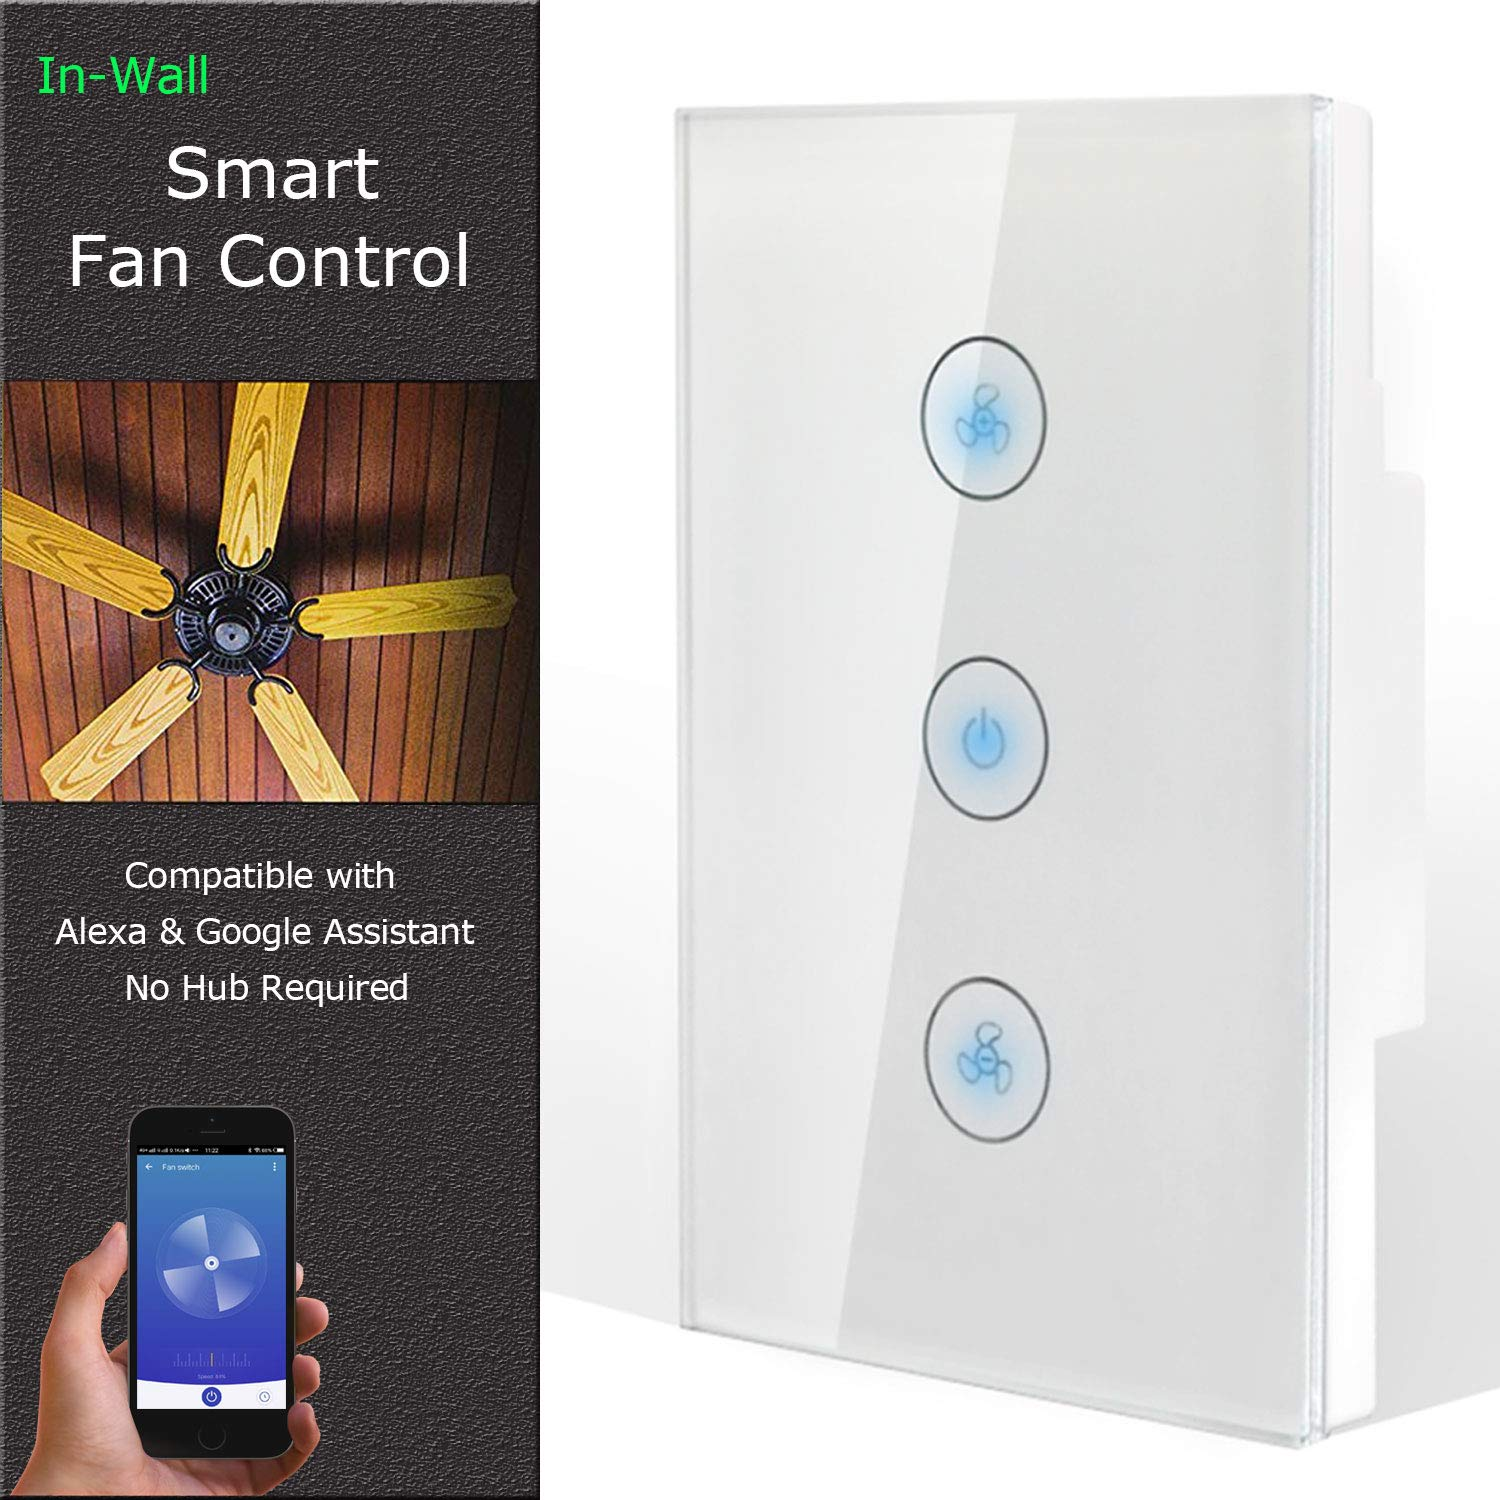 Combination Switch Compatible with Alexa Touch Wall Switch Panel Smart Wifi Light Switches Replace 2 Switches in 1 Gang Wall Box Smartphone App Control